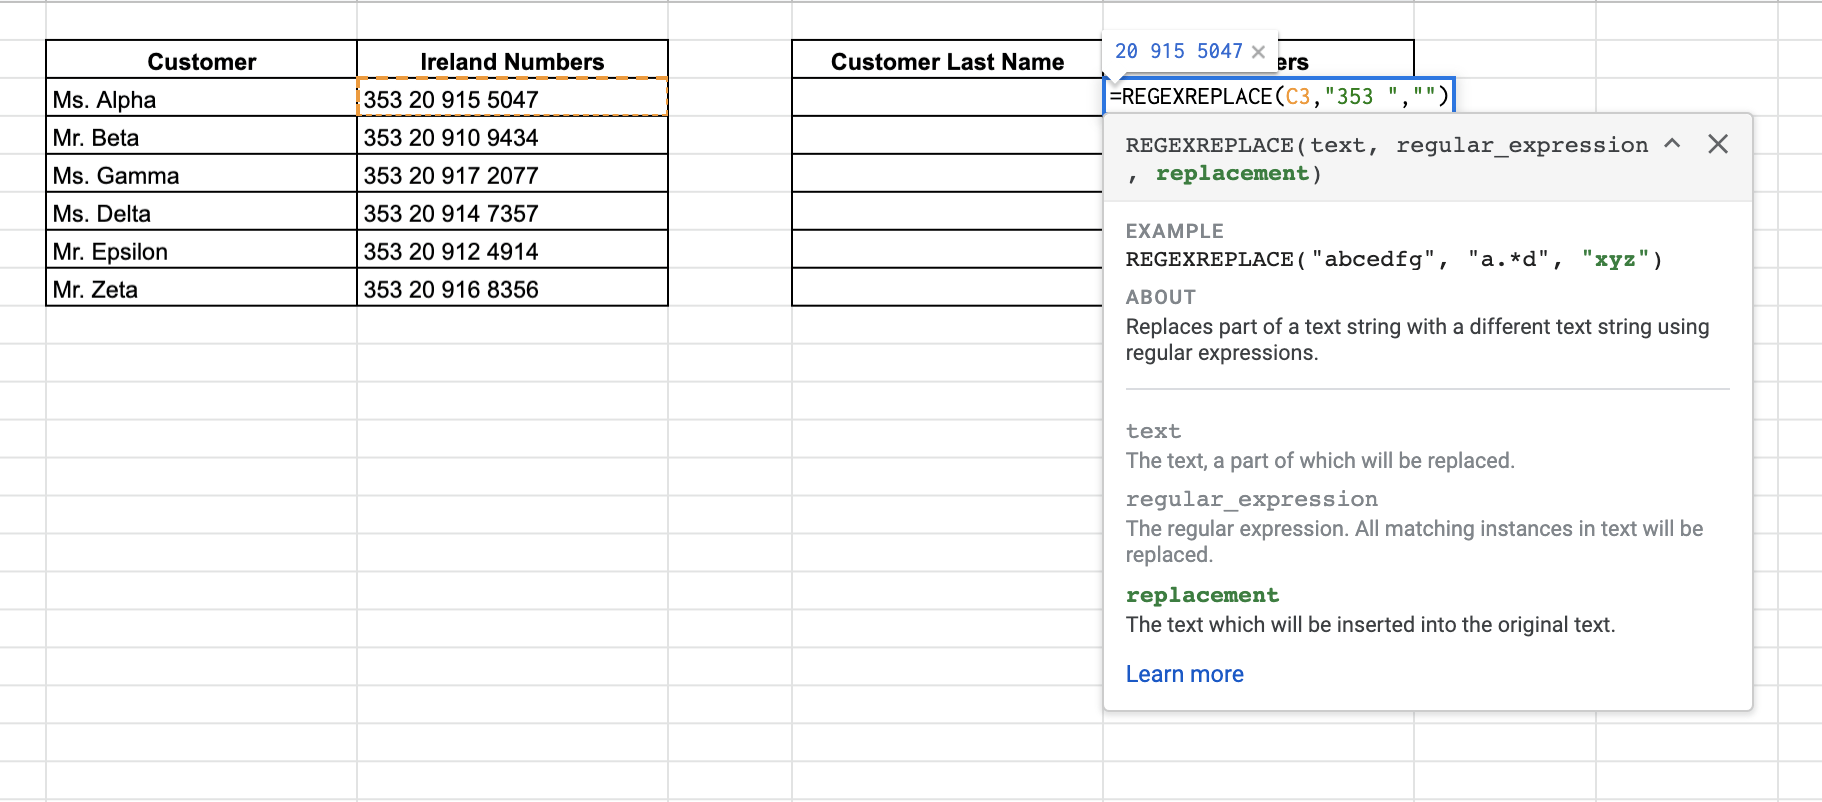 How to Remove Extra Characters from Strings in Google Sheets